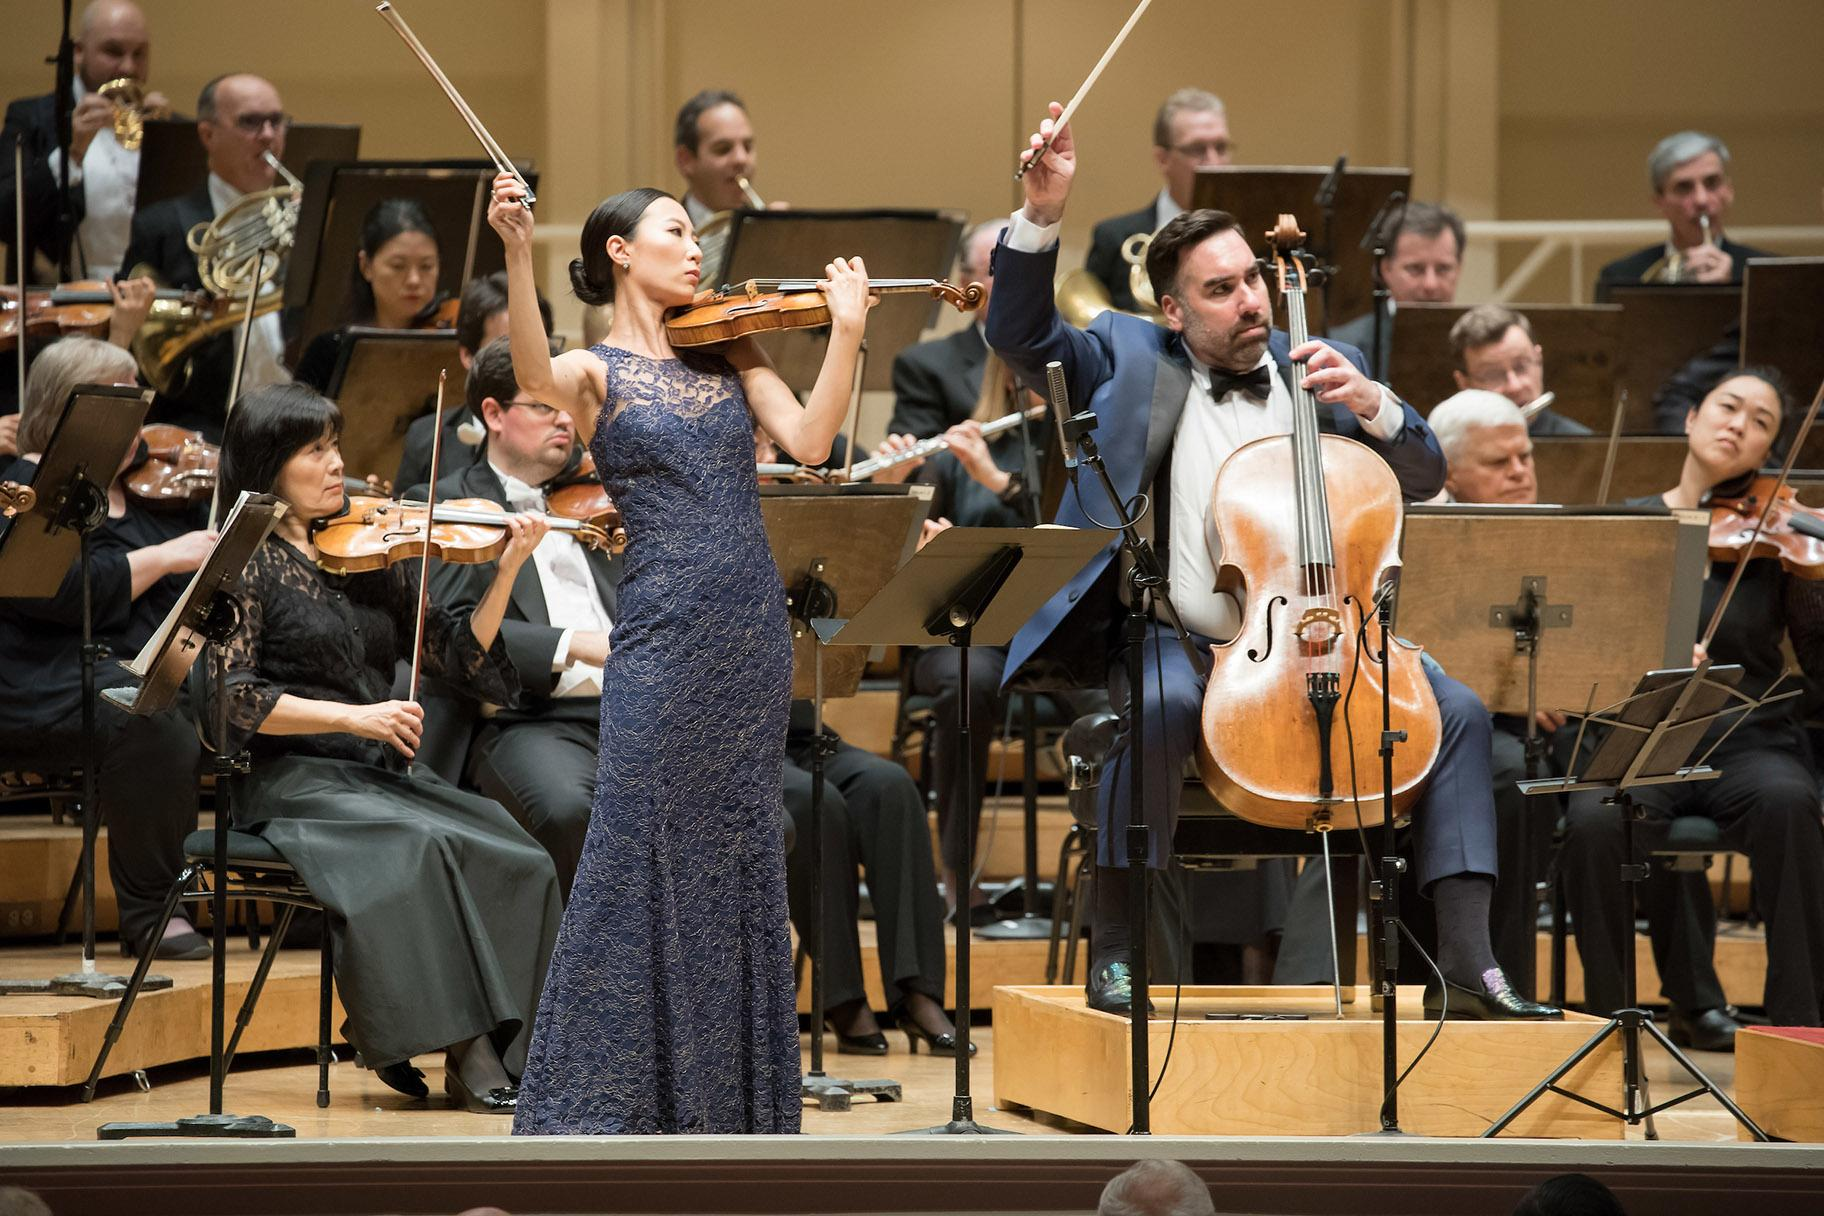 Associate Concertmaster Stephanie Jeong (left) and Assistant Principal Cello Kenneth Olsen (left) perform the Brahms Double Concerto with the Chicago Symphony Orchestra at Symphony Center on Nov. 7, 2019. (Credit: Anne Ryan)